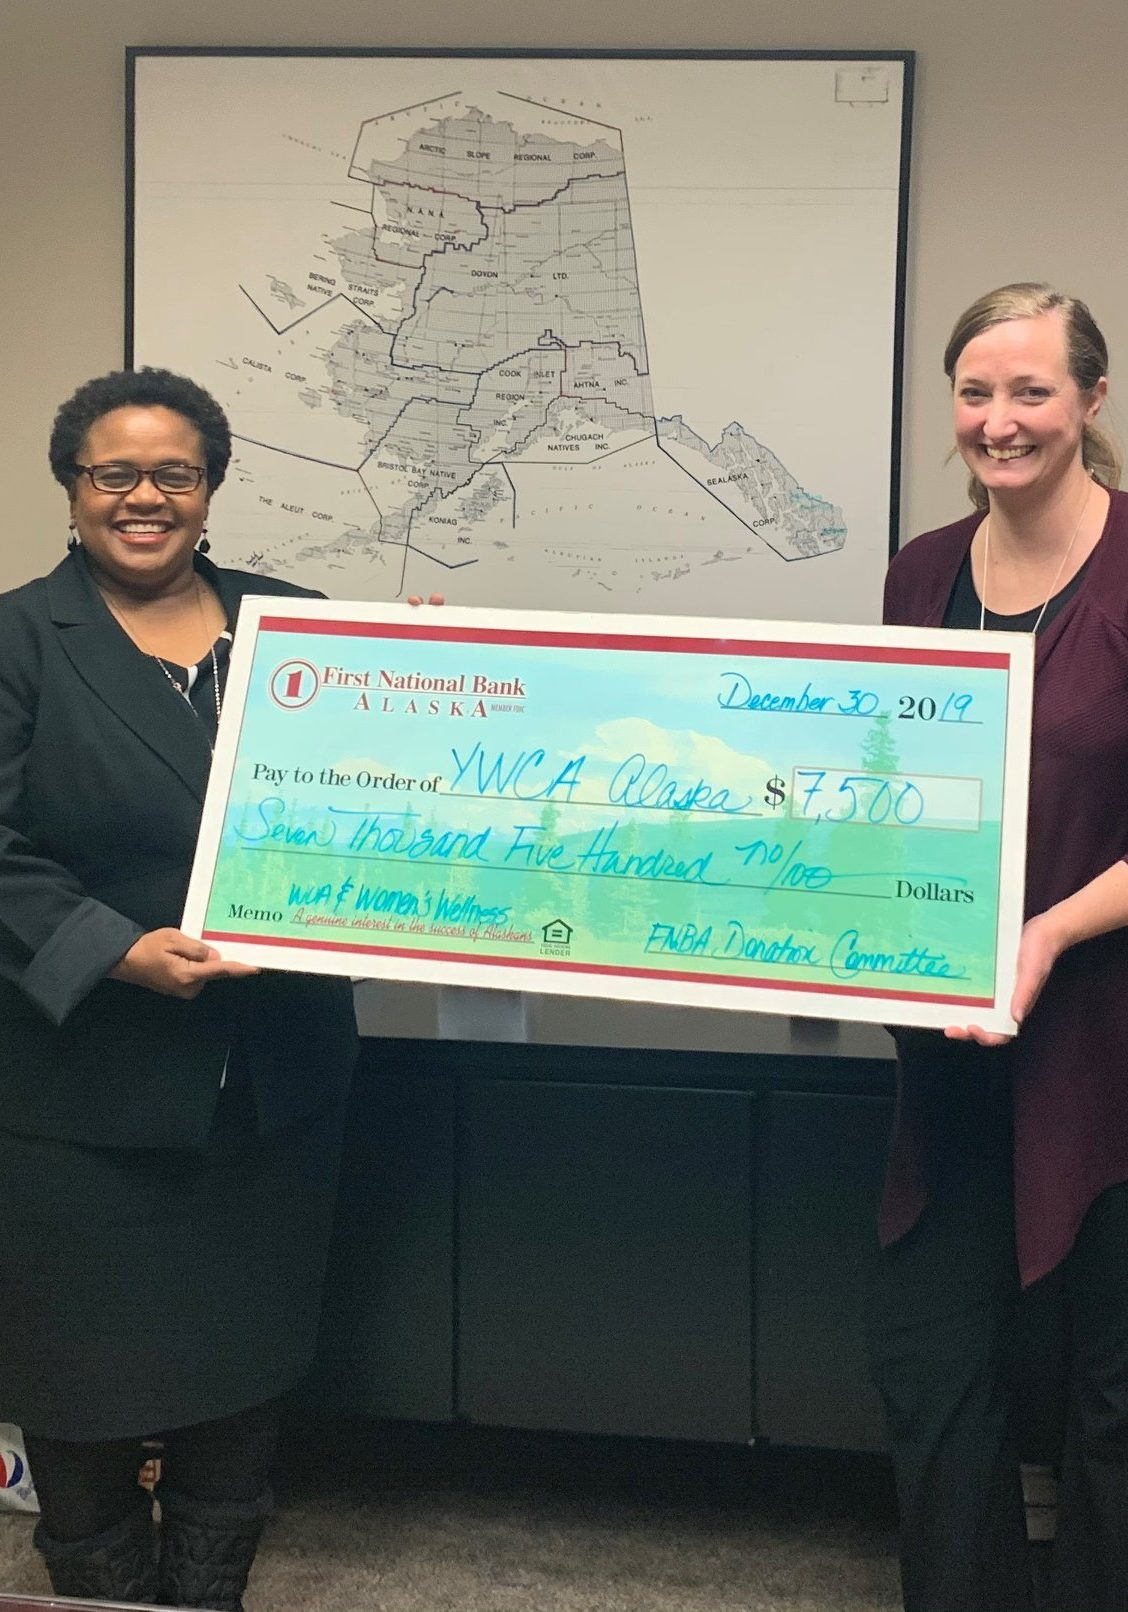 Donation by First National Bank of Alaska